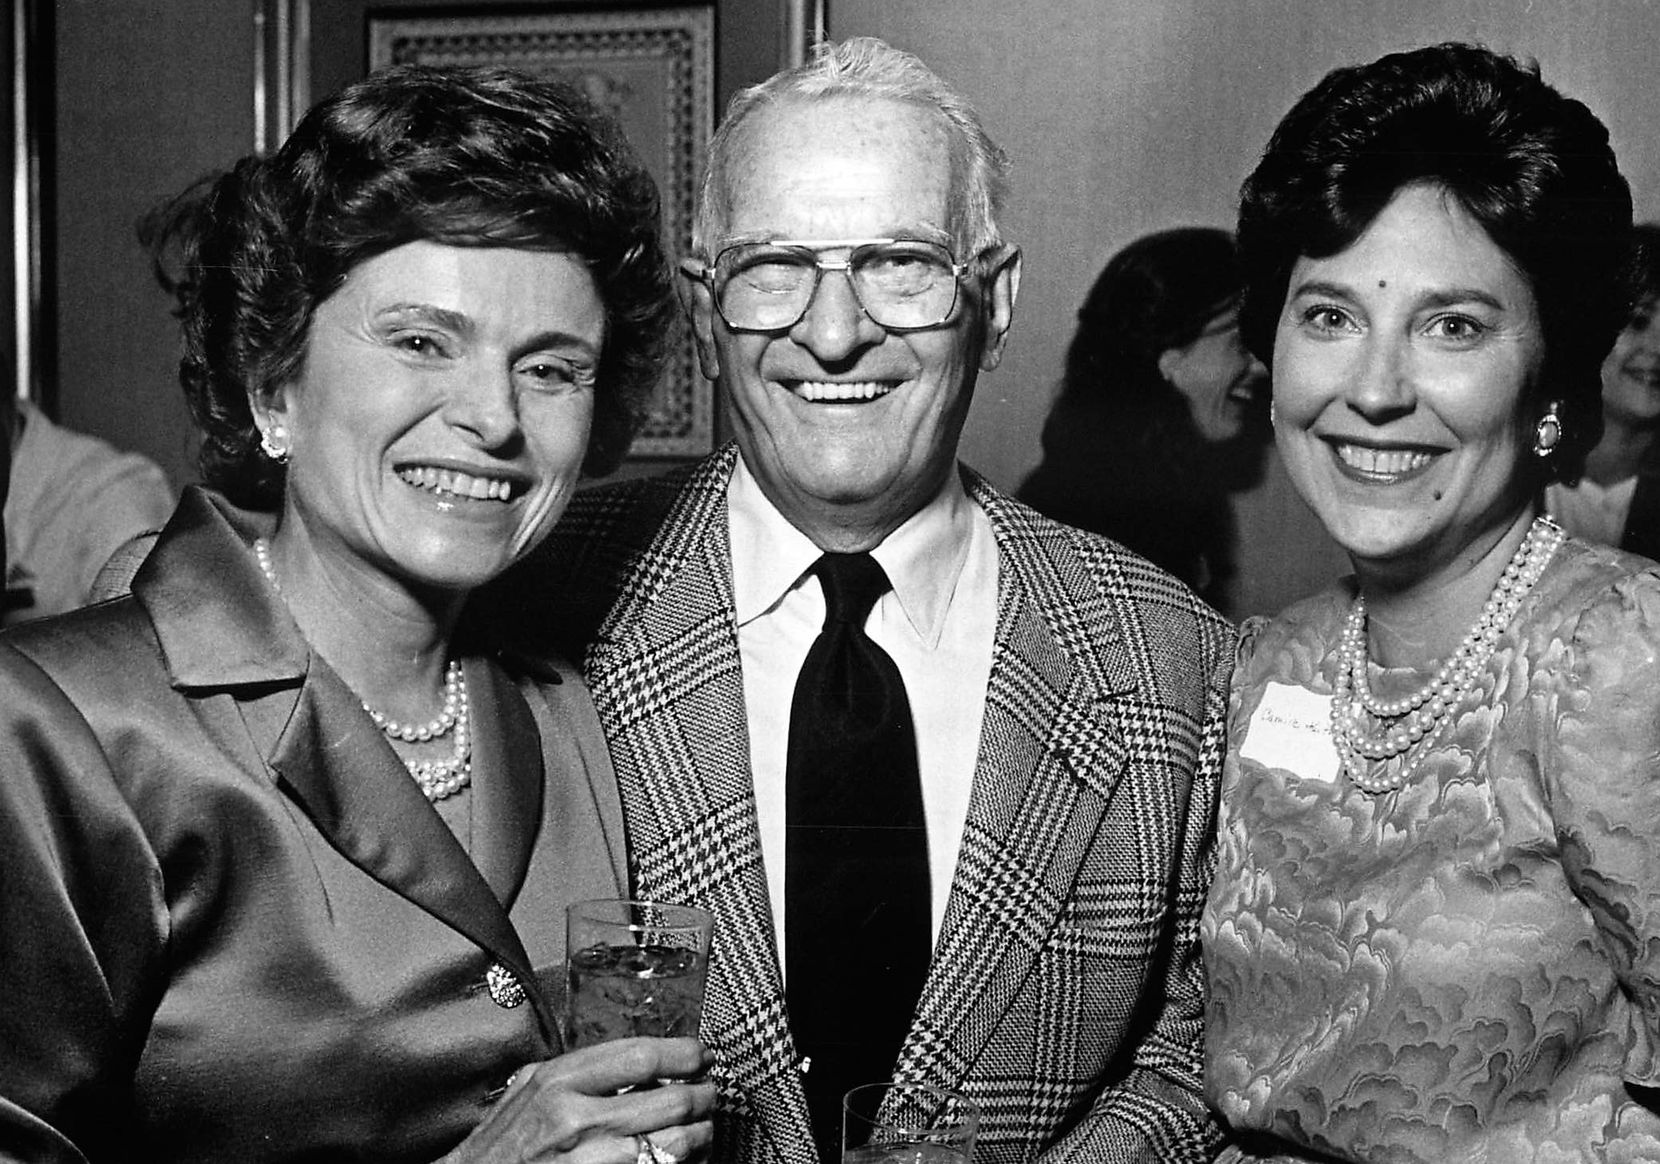 From left: Rita and Bill Clements posed with Camille Keith for this 1989 Fete Set photo while Clements was serving his second term as Texas governor.